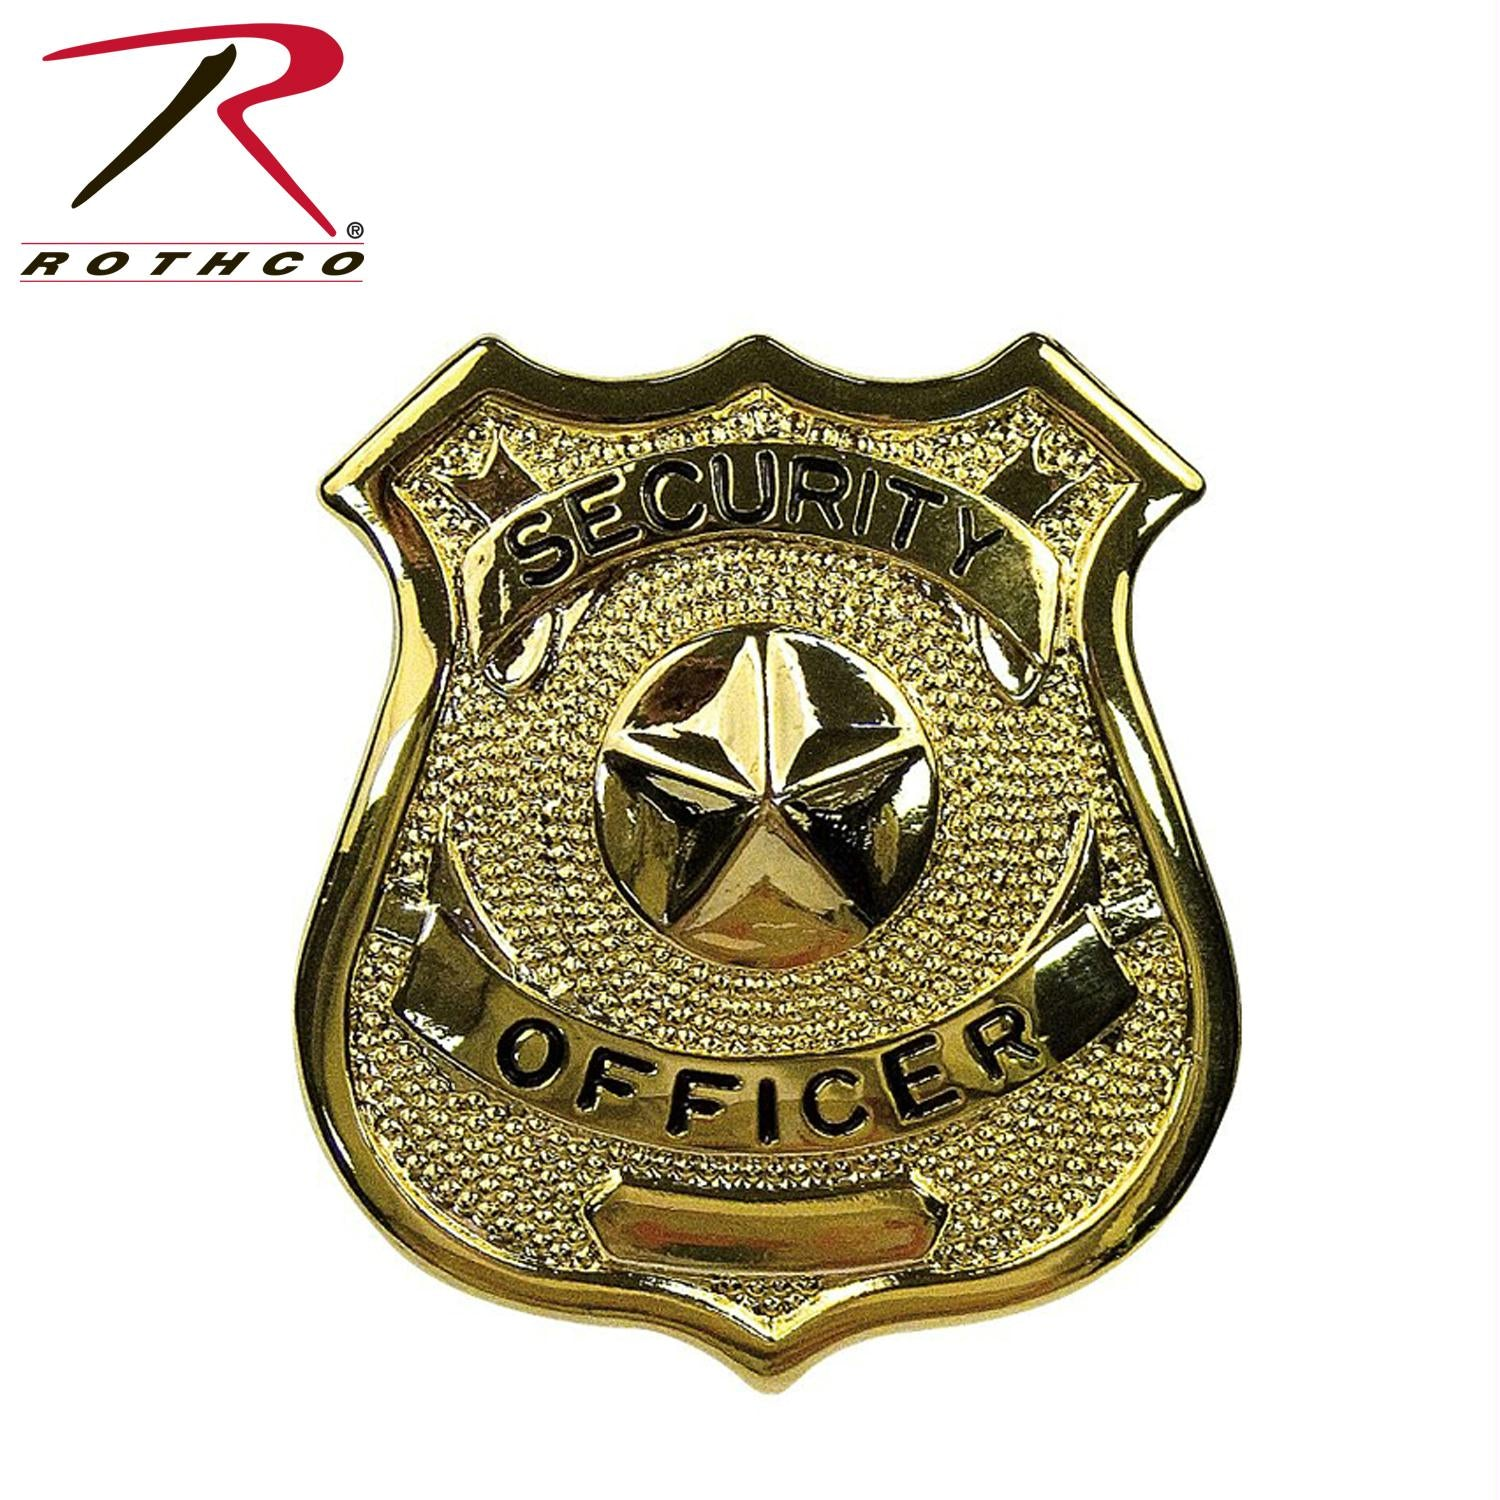 Rothco Security Officer Badge - Gold